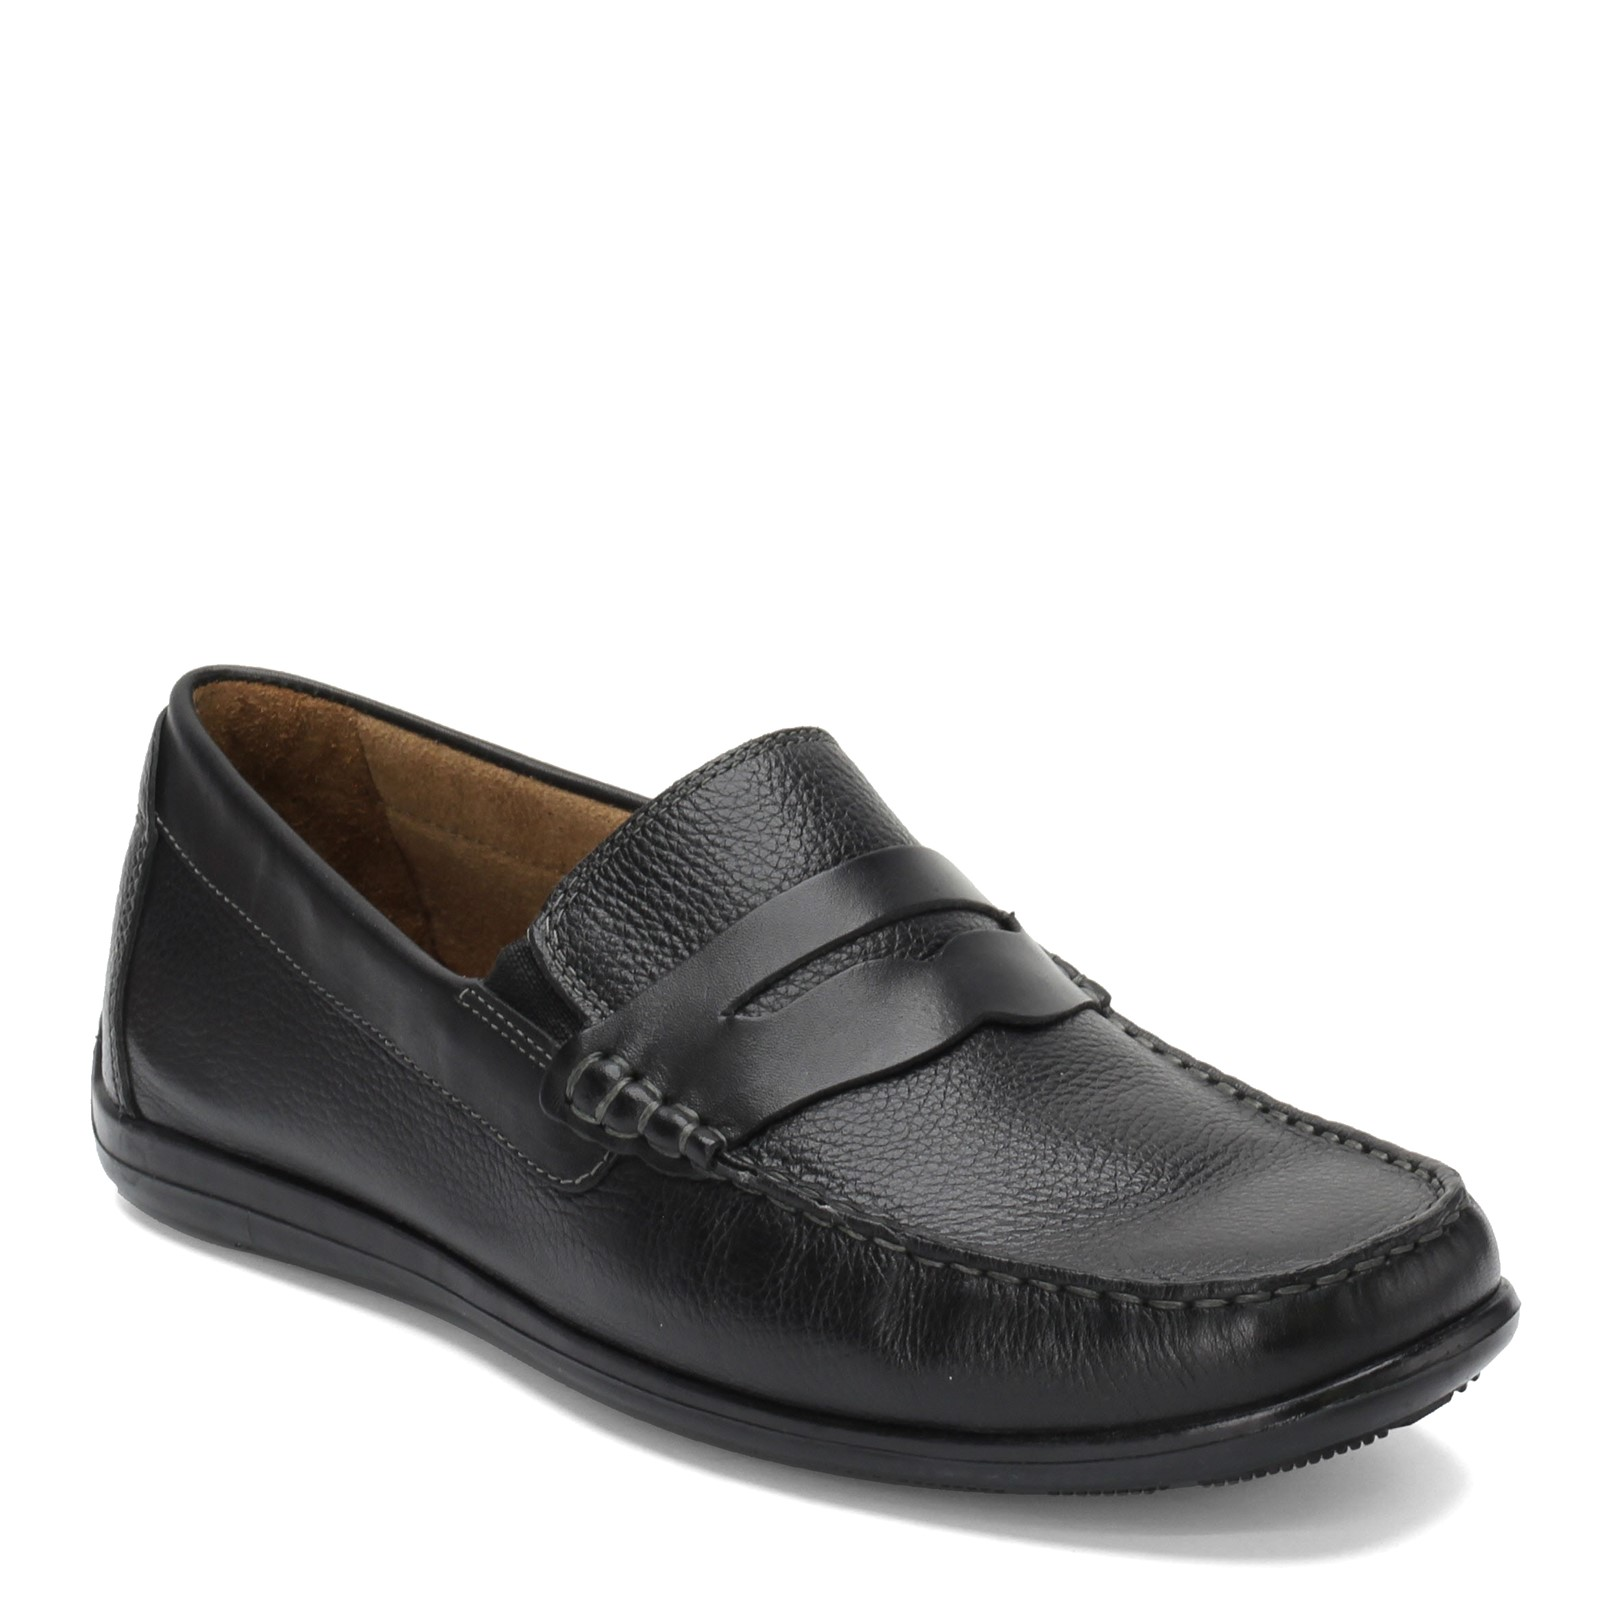 Men's Florsheim, Intrepid Penny